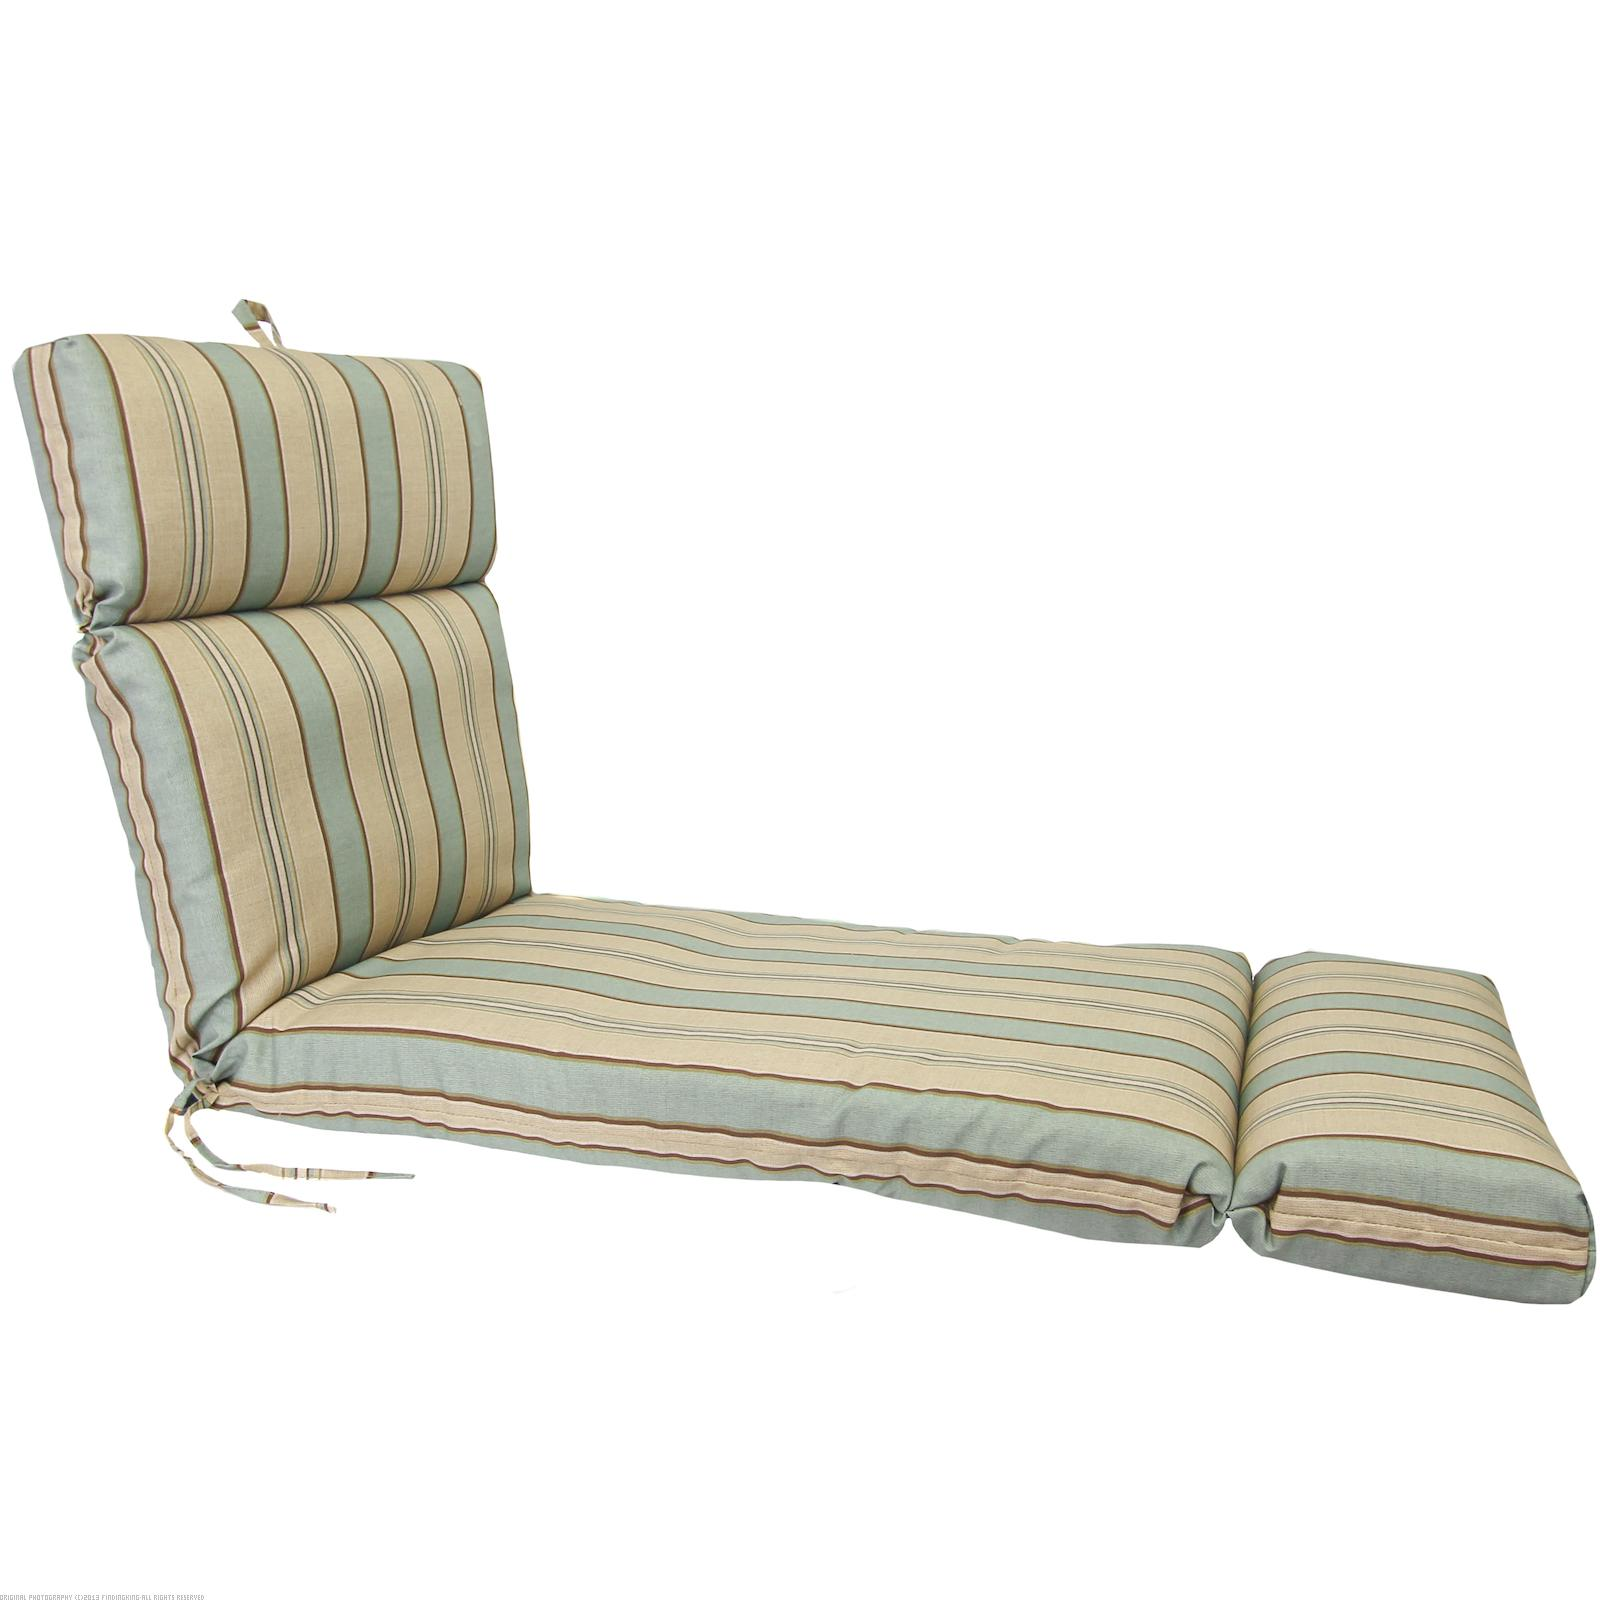 "Teal Brown & Beige French Edge Chaise Lounge Cushion 22"" x 72"" x 4"""